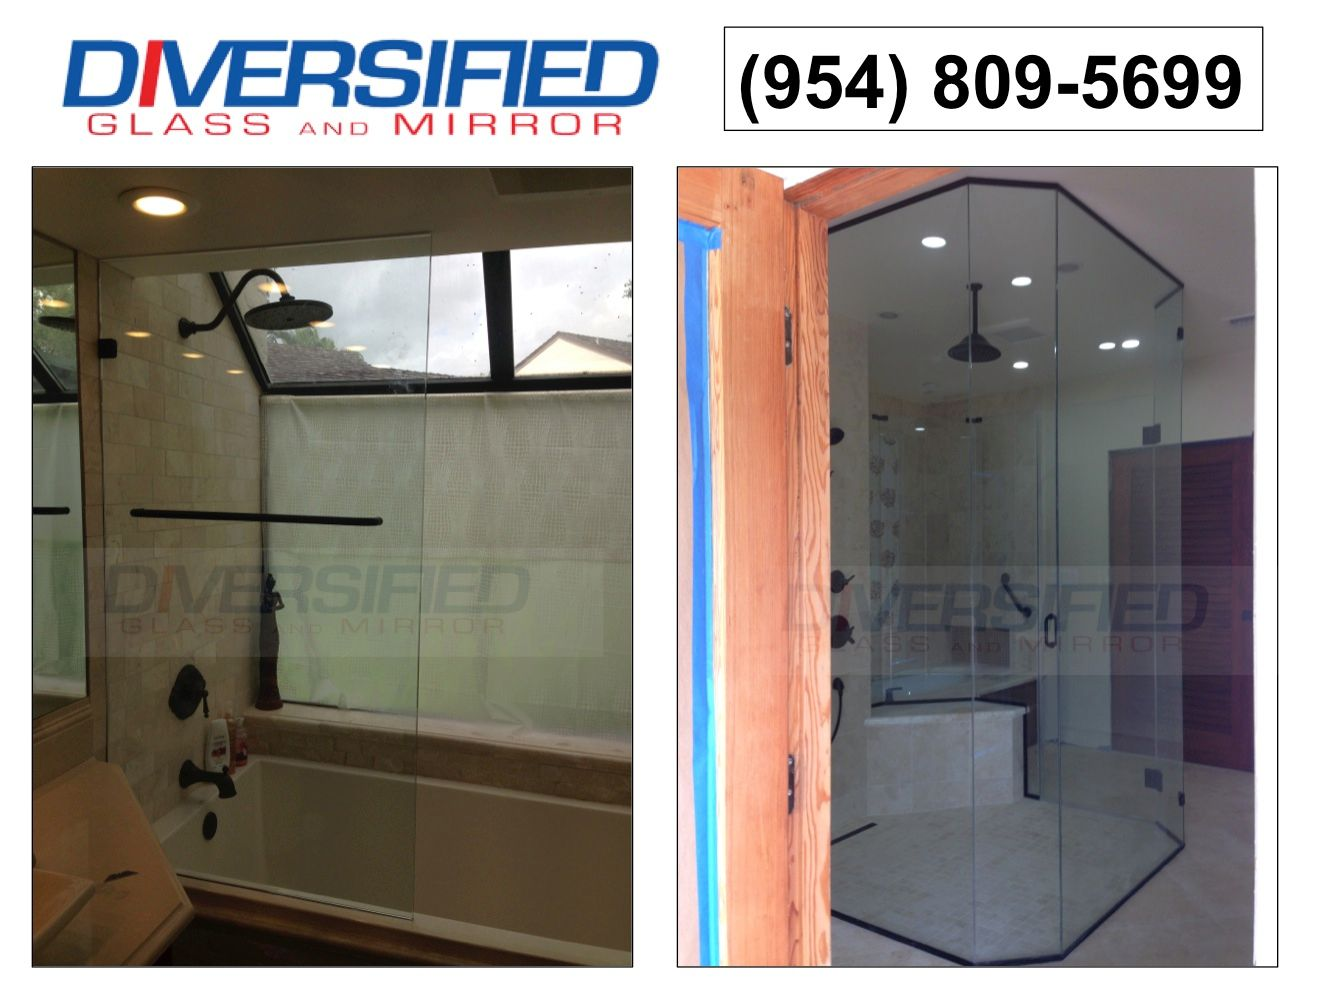 Window Glass Repair In Pompano Beach Fl Diversified Glass And Mirror